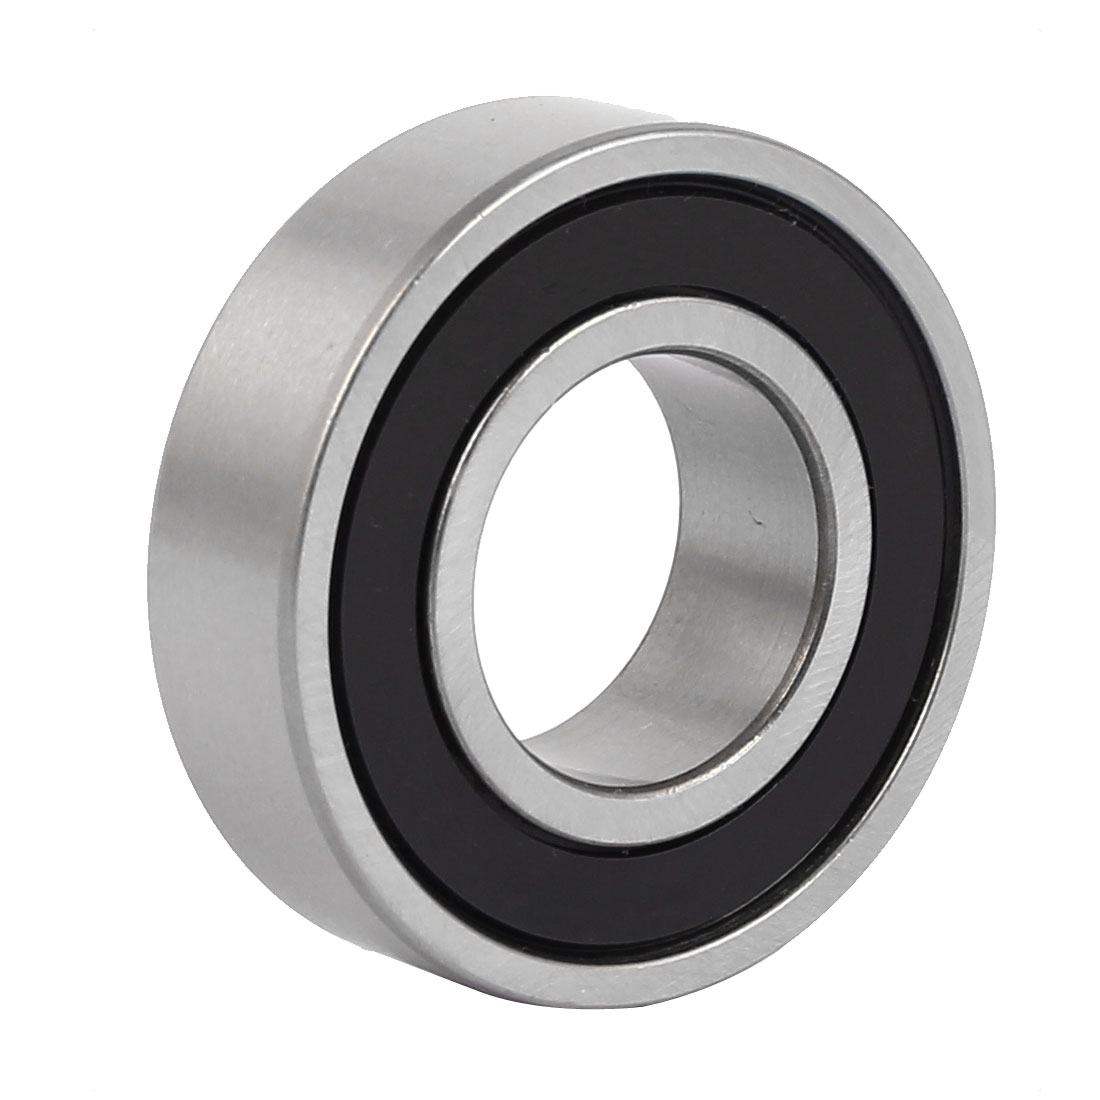 2RZ6003 35mm x 17mm x 10mm Single Row Double Shielded Deep Groove Ball Bearing